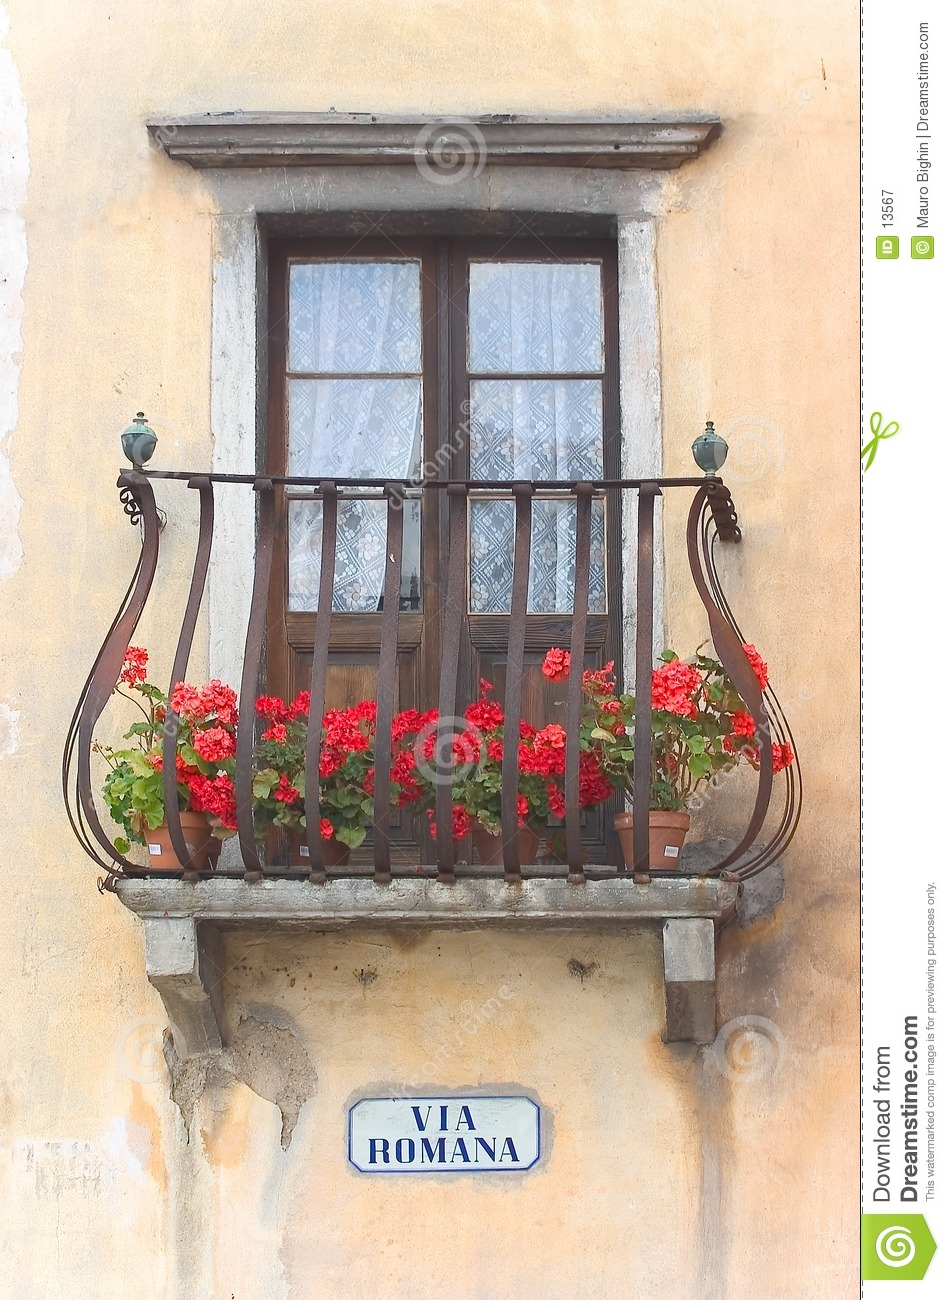 Via romana italian balcony stock image image 13567 for Balcony in italian